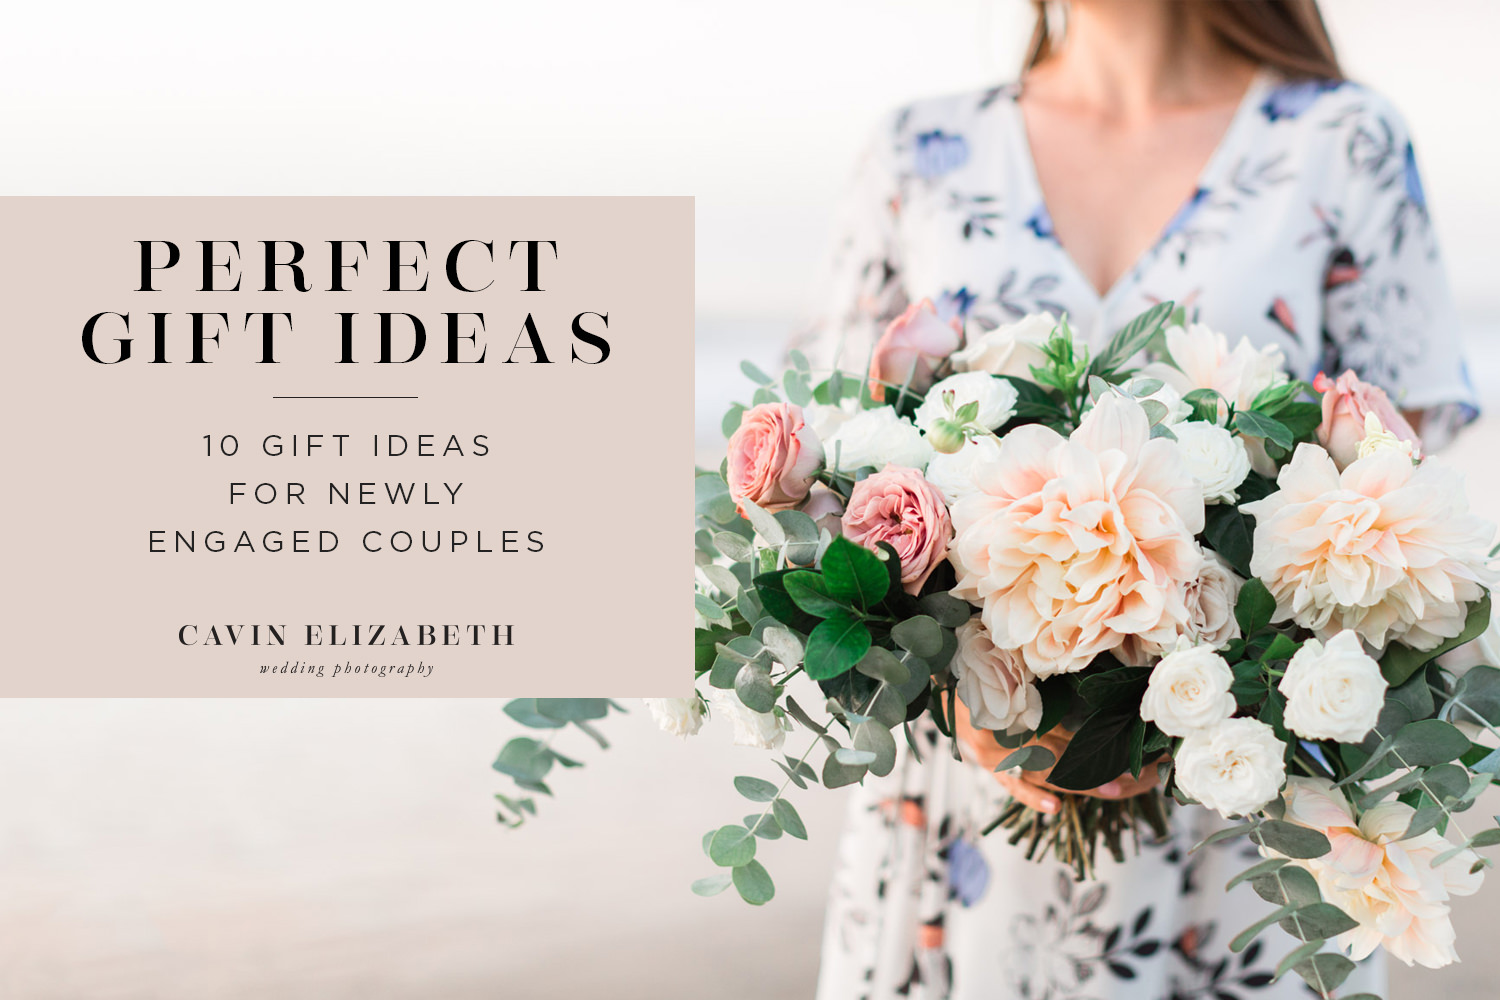 Wedding Gift Ideas For Couples: 10 Ideas For Wedding Gifts For Newly Engaged Couples In 2018